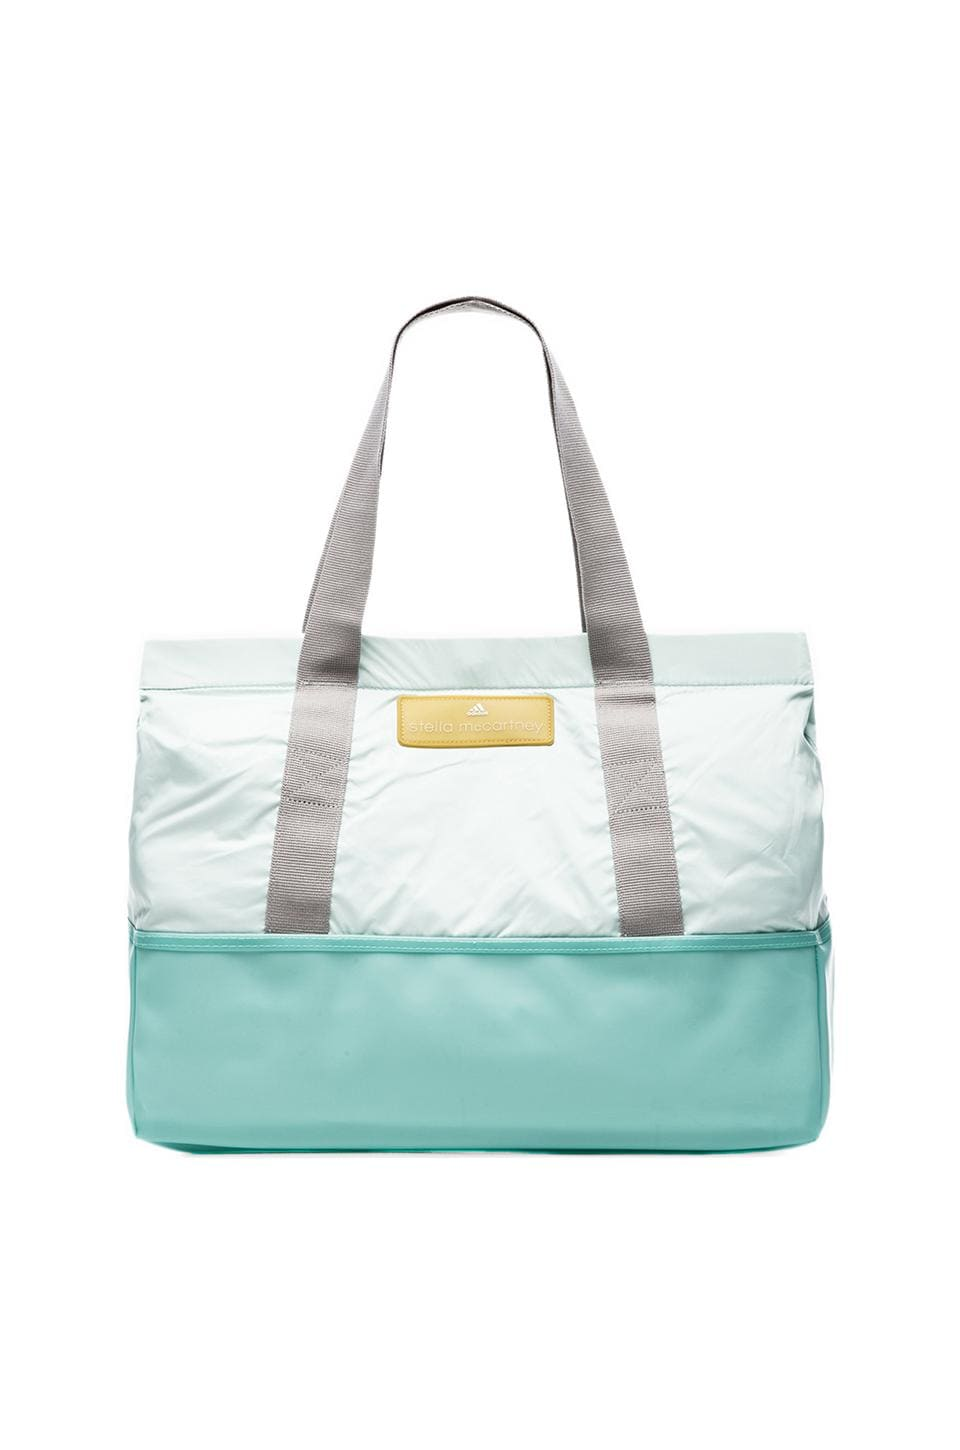 adidas by Stella McCartney Swimbag in Light Blue & White